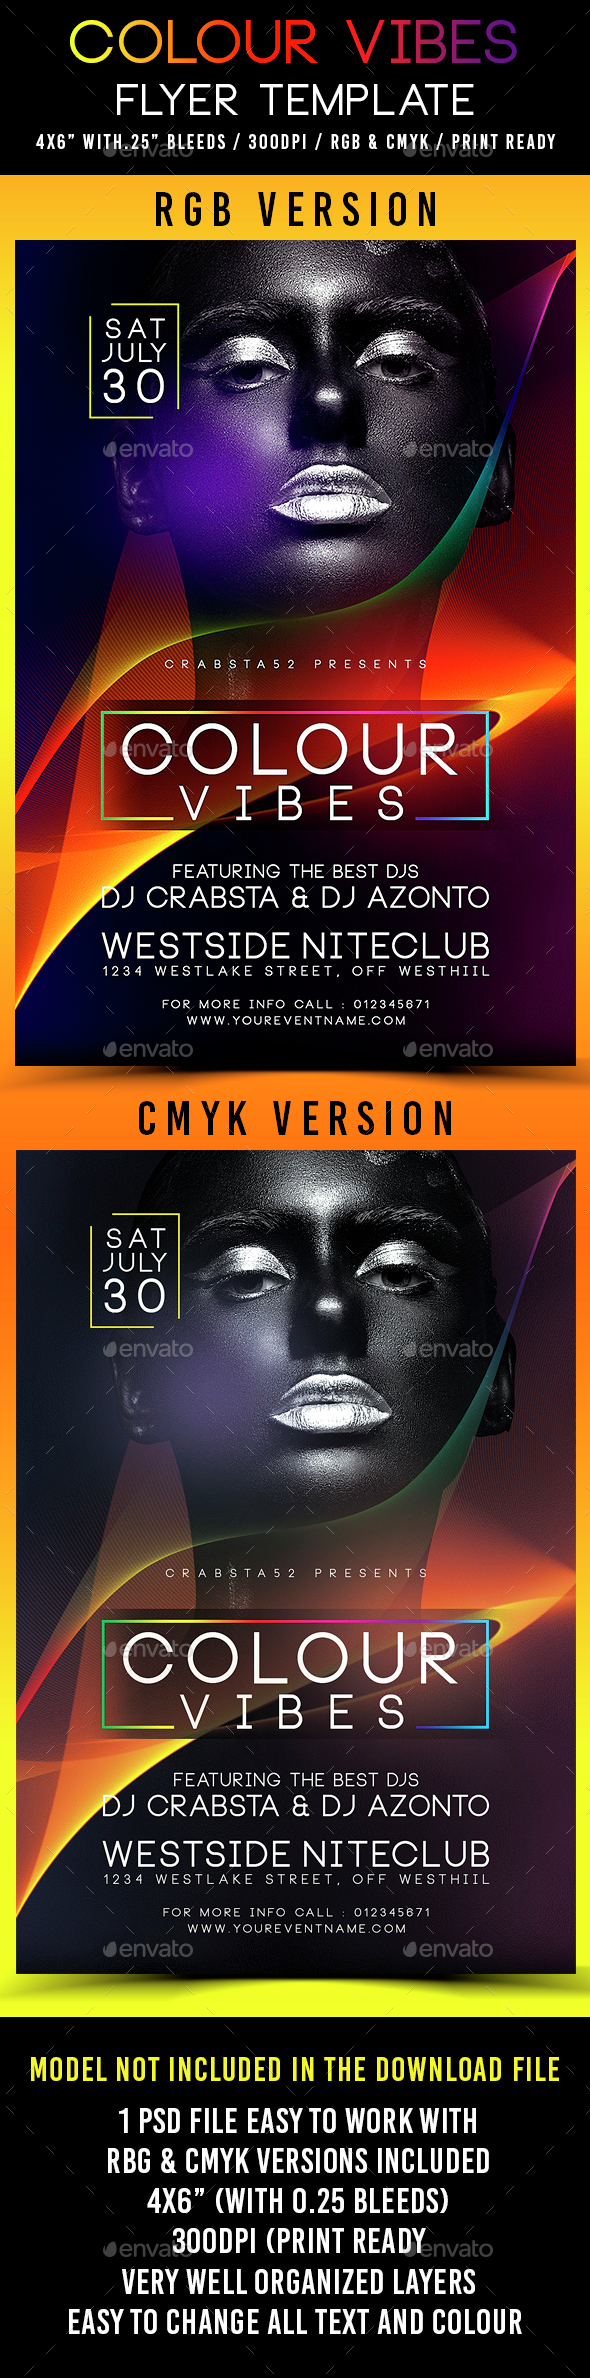 Colour Vibes Flyer Template - Clubs & Parties Events